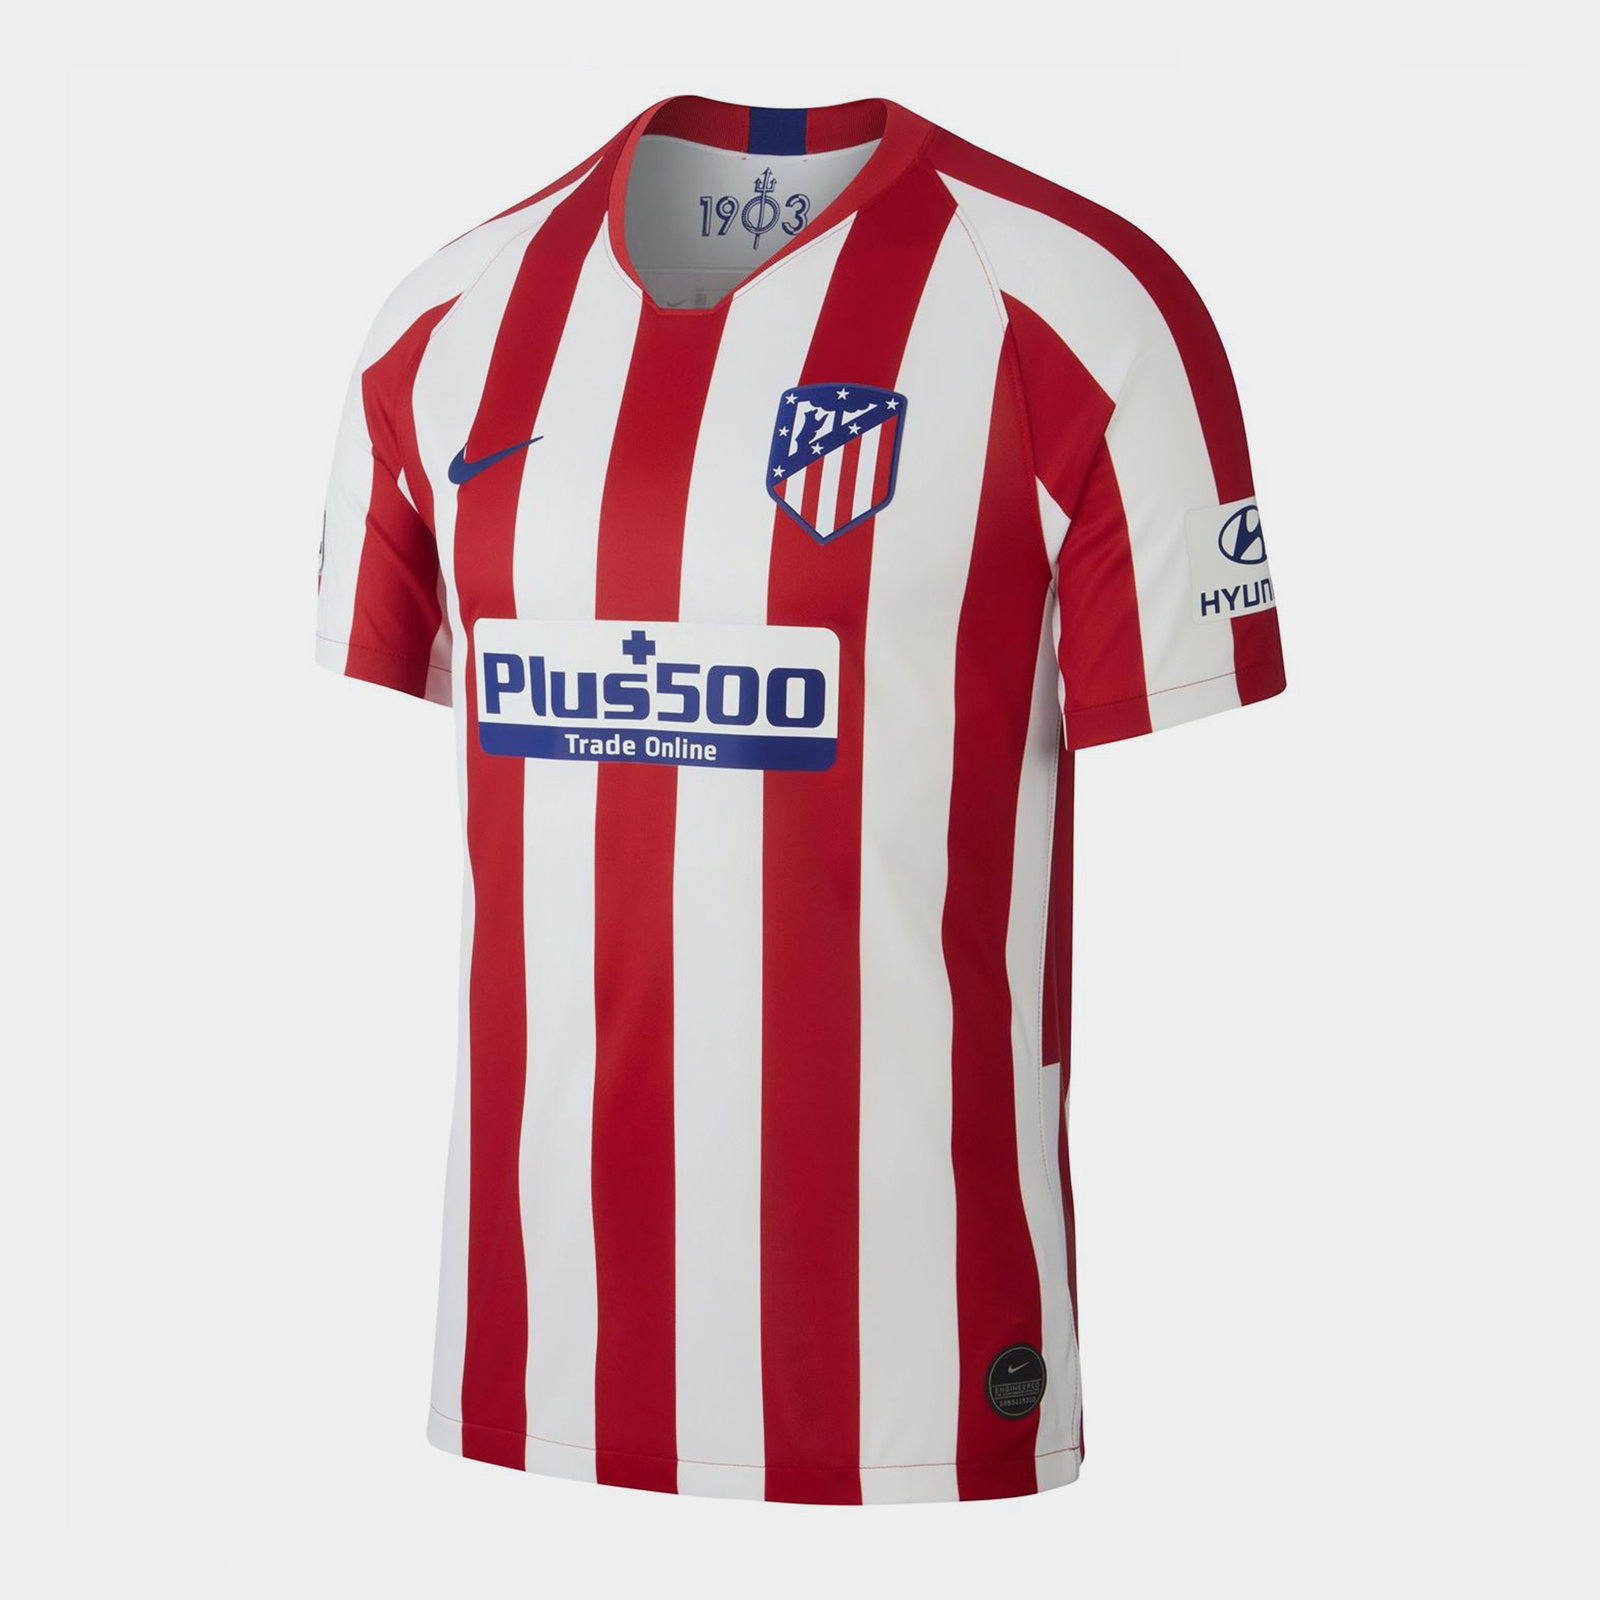 Atletico Madrid 19/20 Home Replica Football Shirt